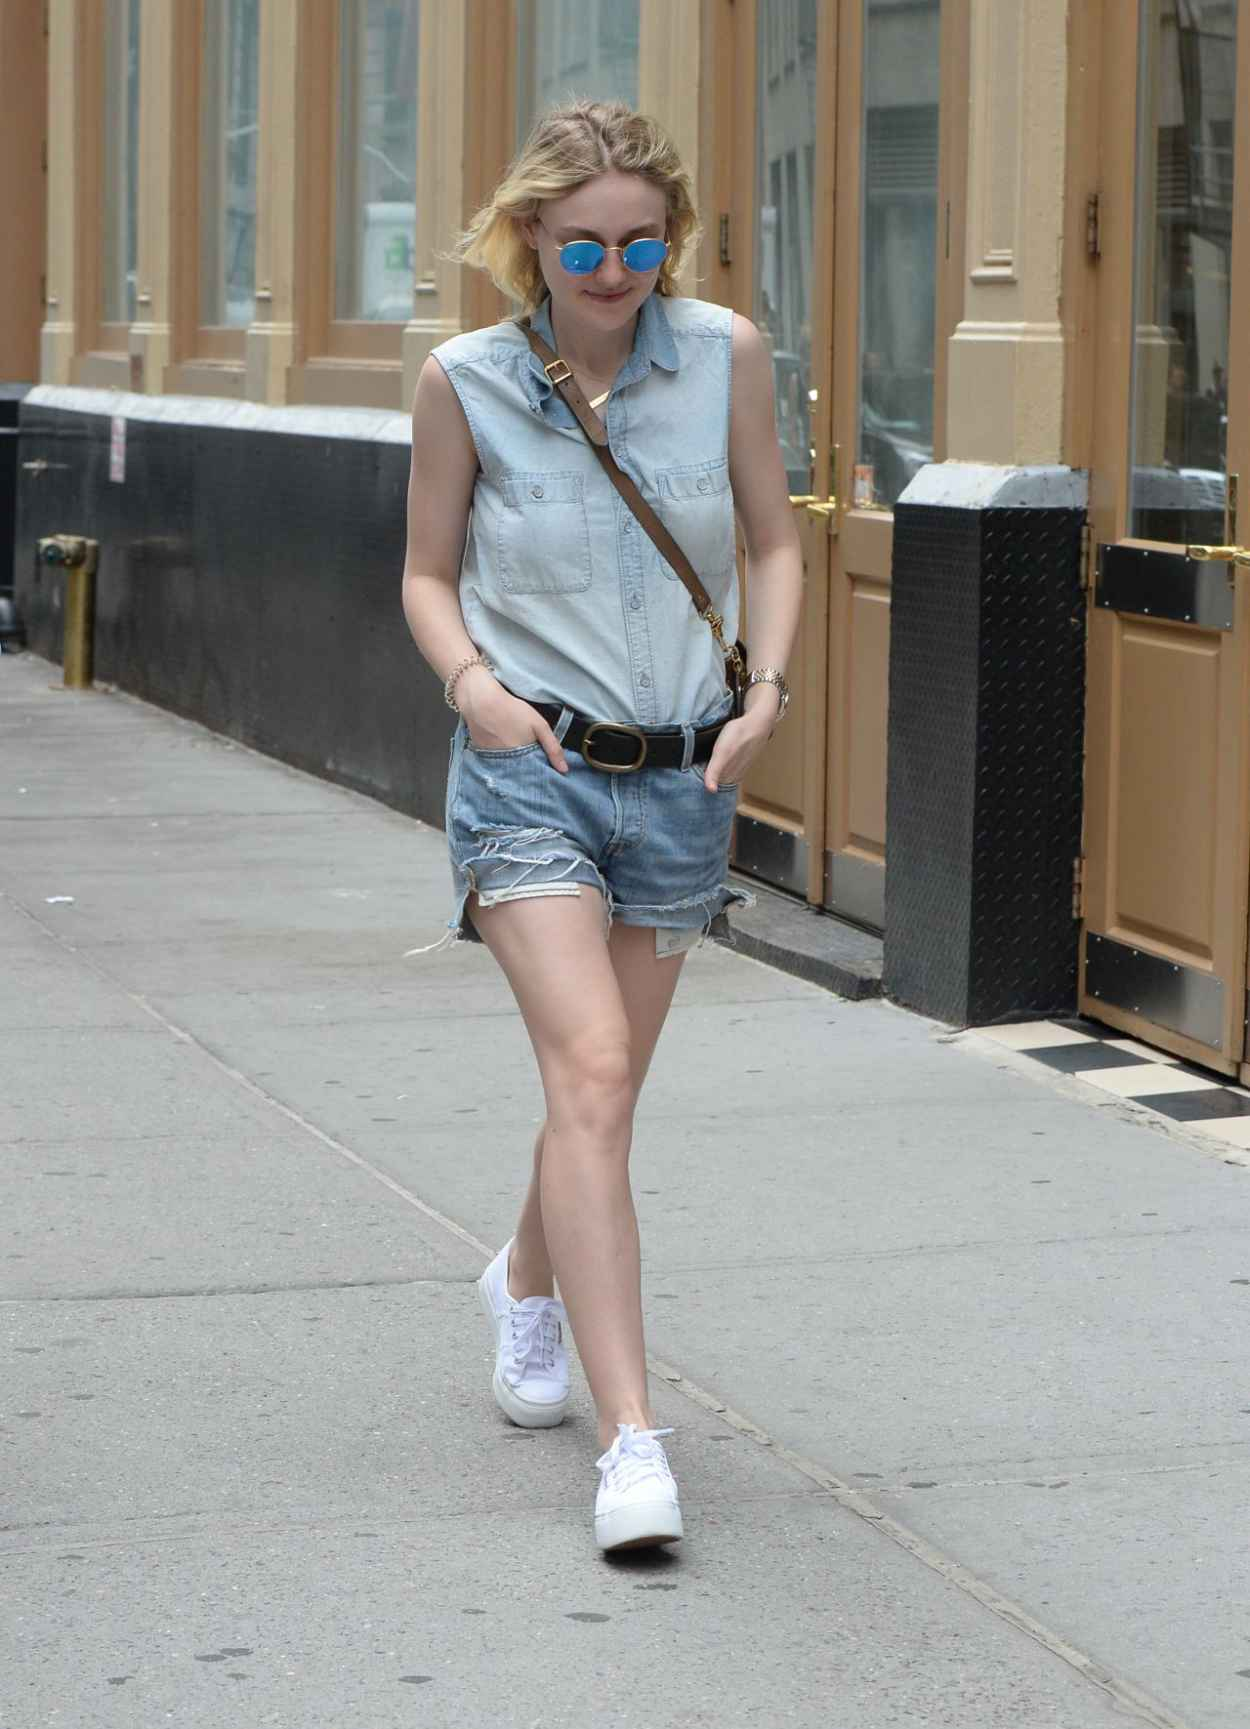 Dakota Fanning Leggy in Jeans Shorts - Soho NYC, June 2015-3